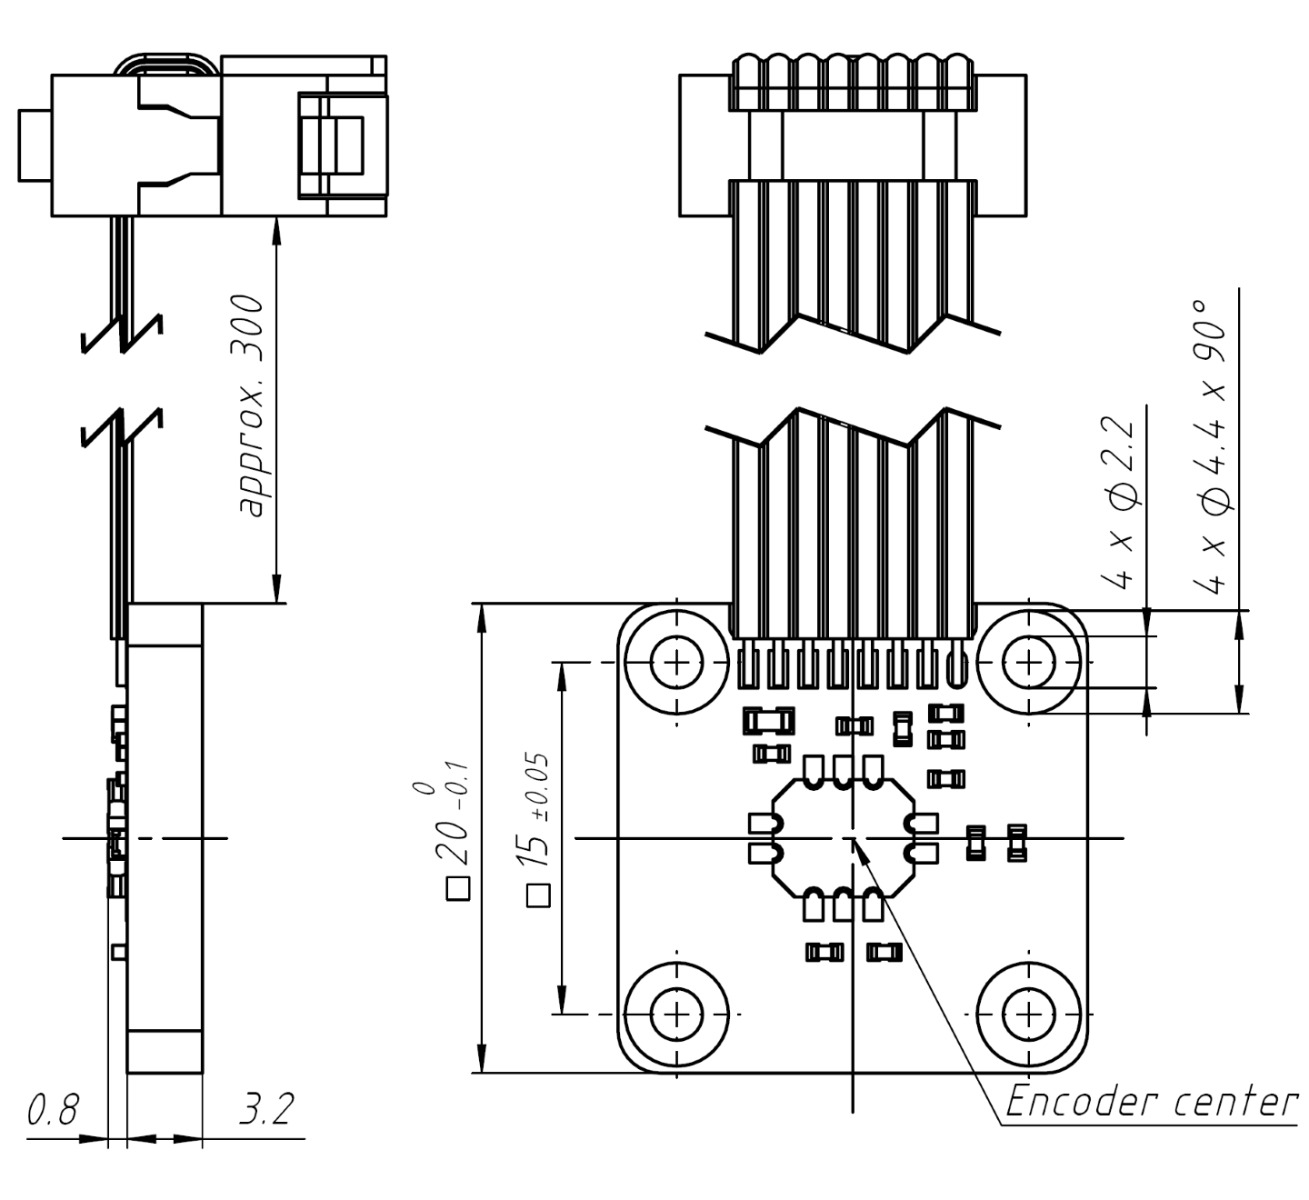 Encoder Id4501c Ribbon Cable Schematic Dimensions Mm Of Id4501 On Holder Type A With Flat Pitch 127 And 8 Pin Din41651 Connector